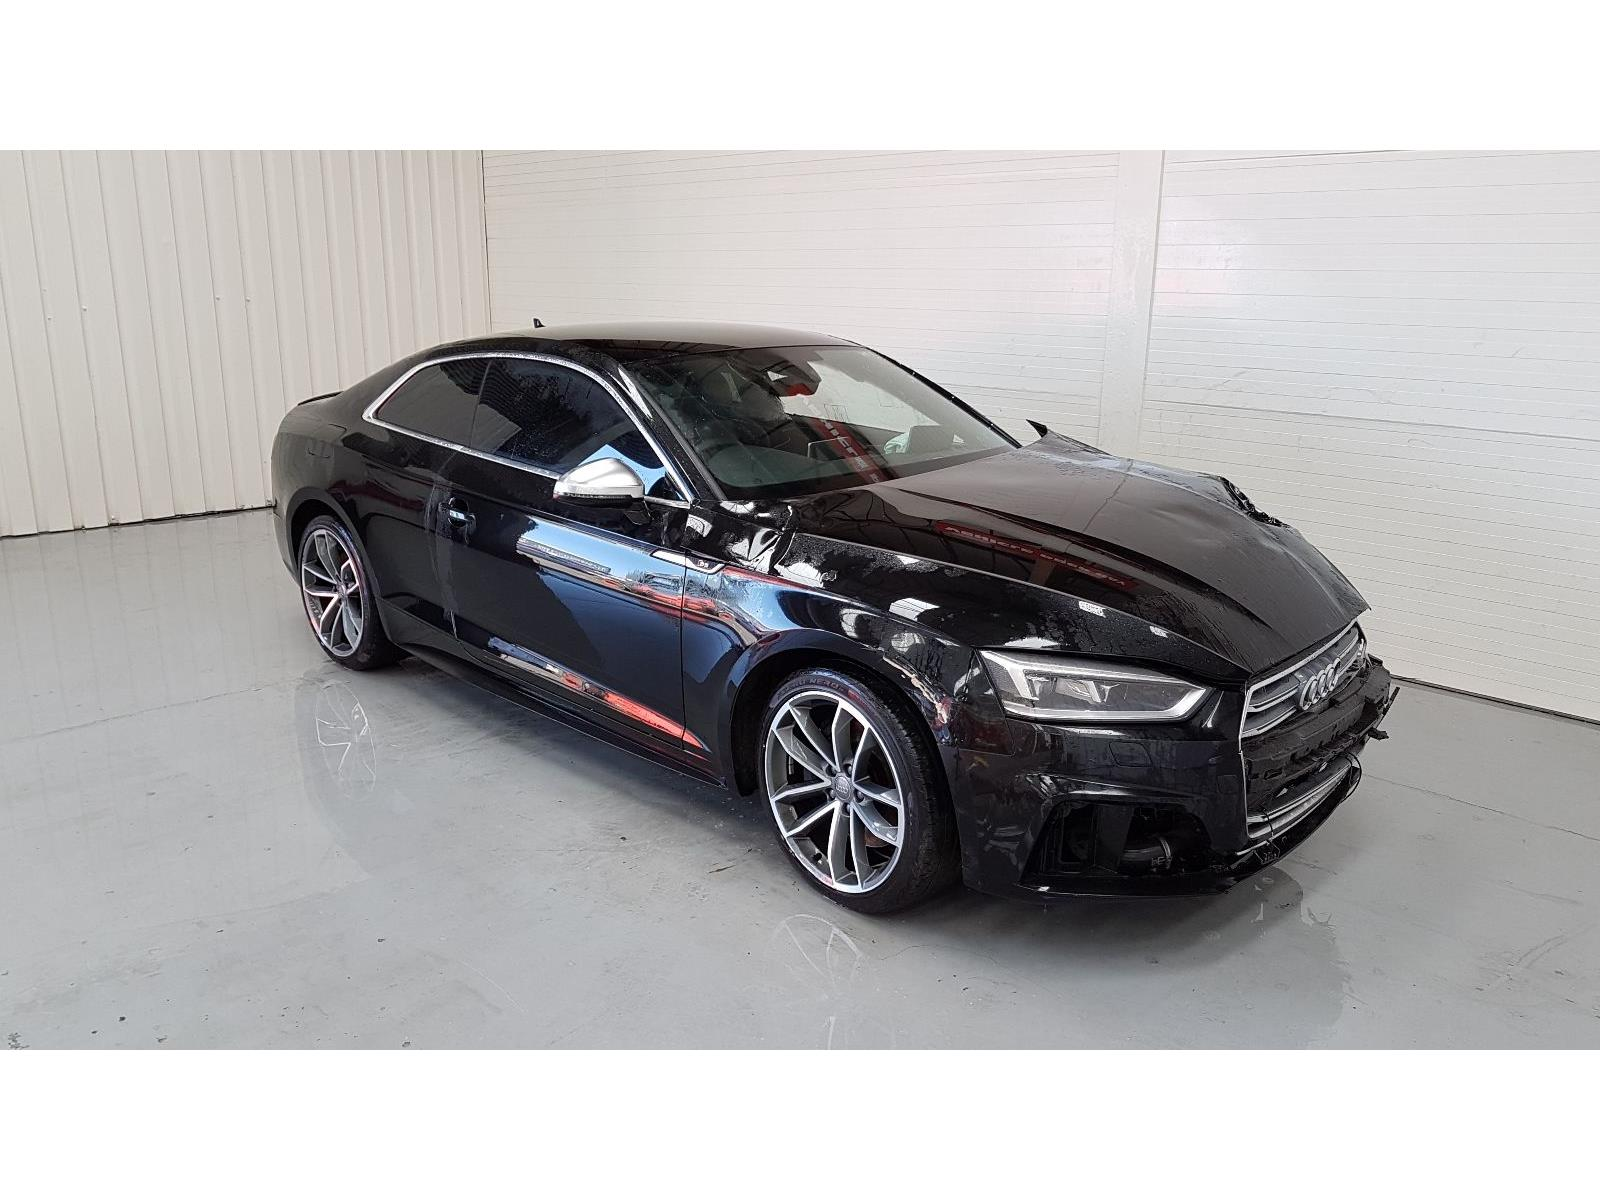 2018 Audi A5 S5 Quattro TFSi 4WD 2995cc Turbo Petrol Automatic 8 Speed 2 Door Coupe